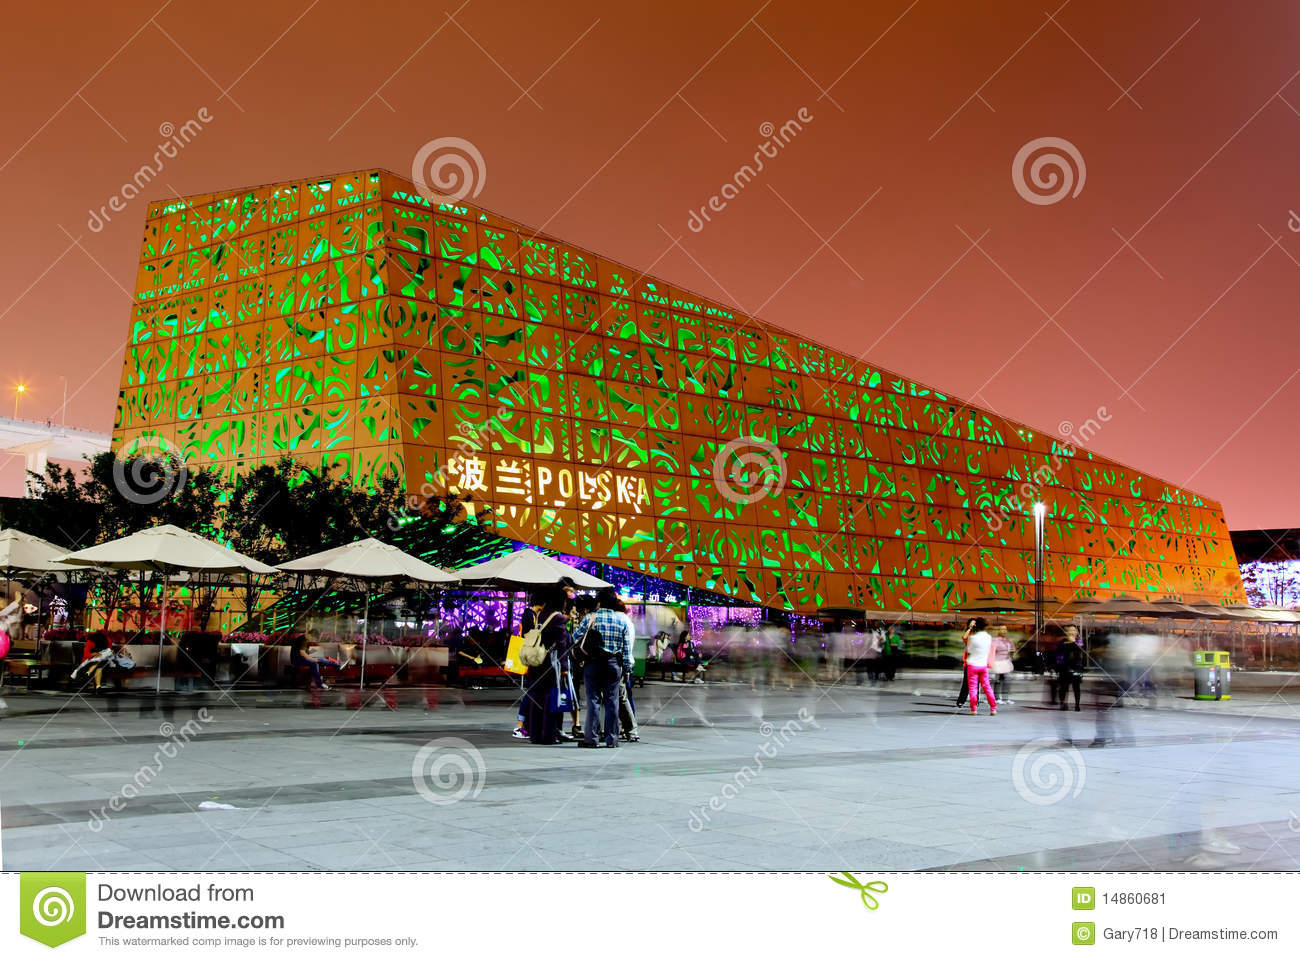 The Poland Pavilion at the World Expo in Shanghai